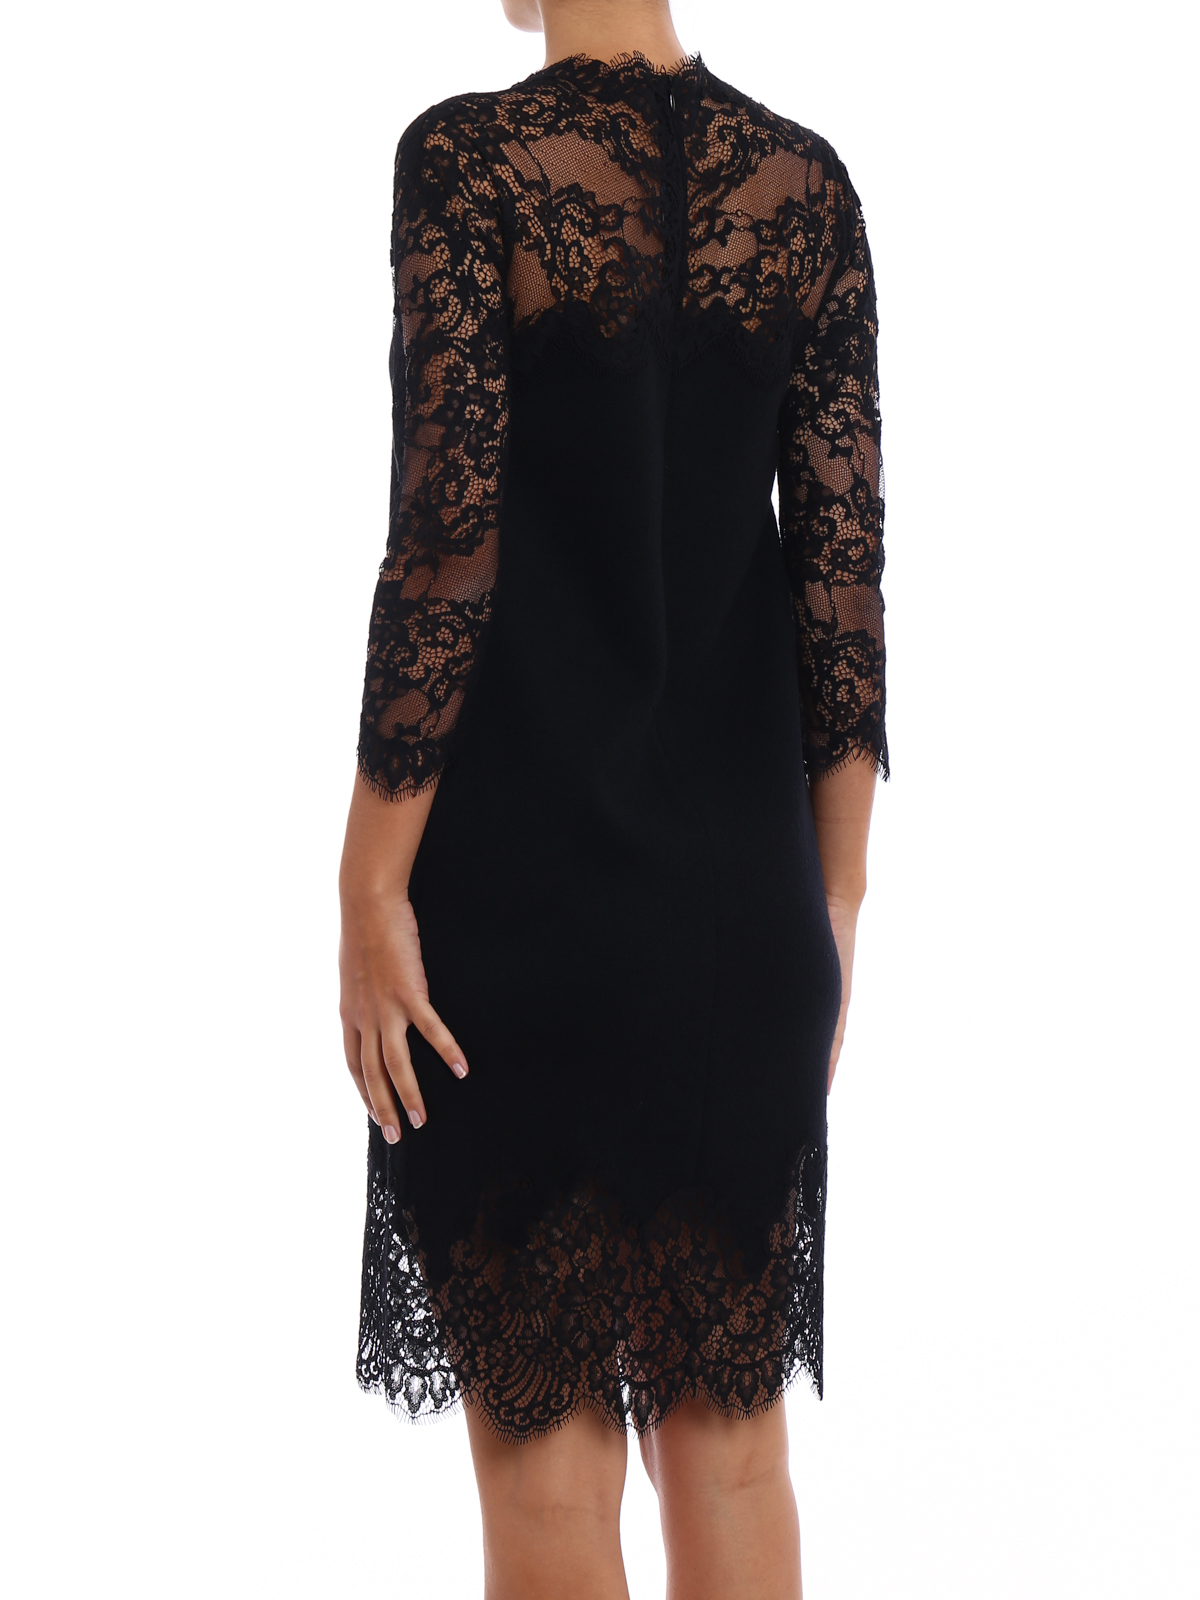 0565c5f9deb0 iKRIX ERMANNO SCERVINO: cocktail dresses - Bon ton lace pashmina dress